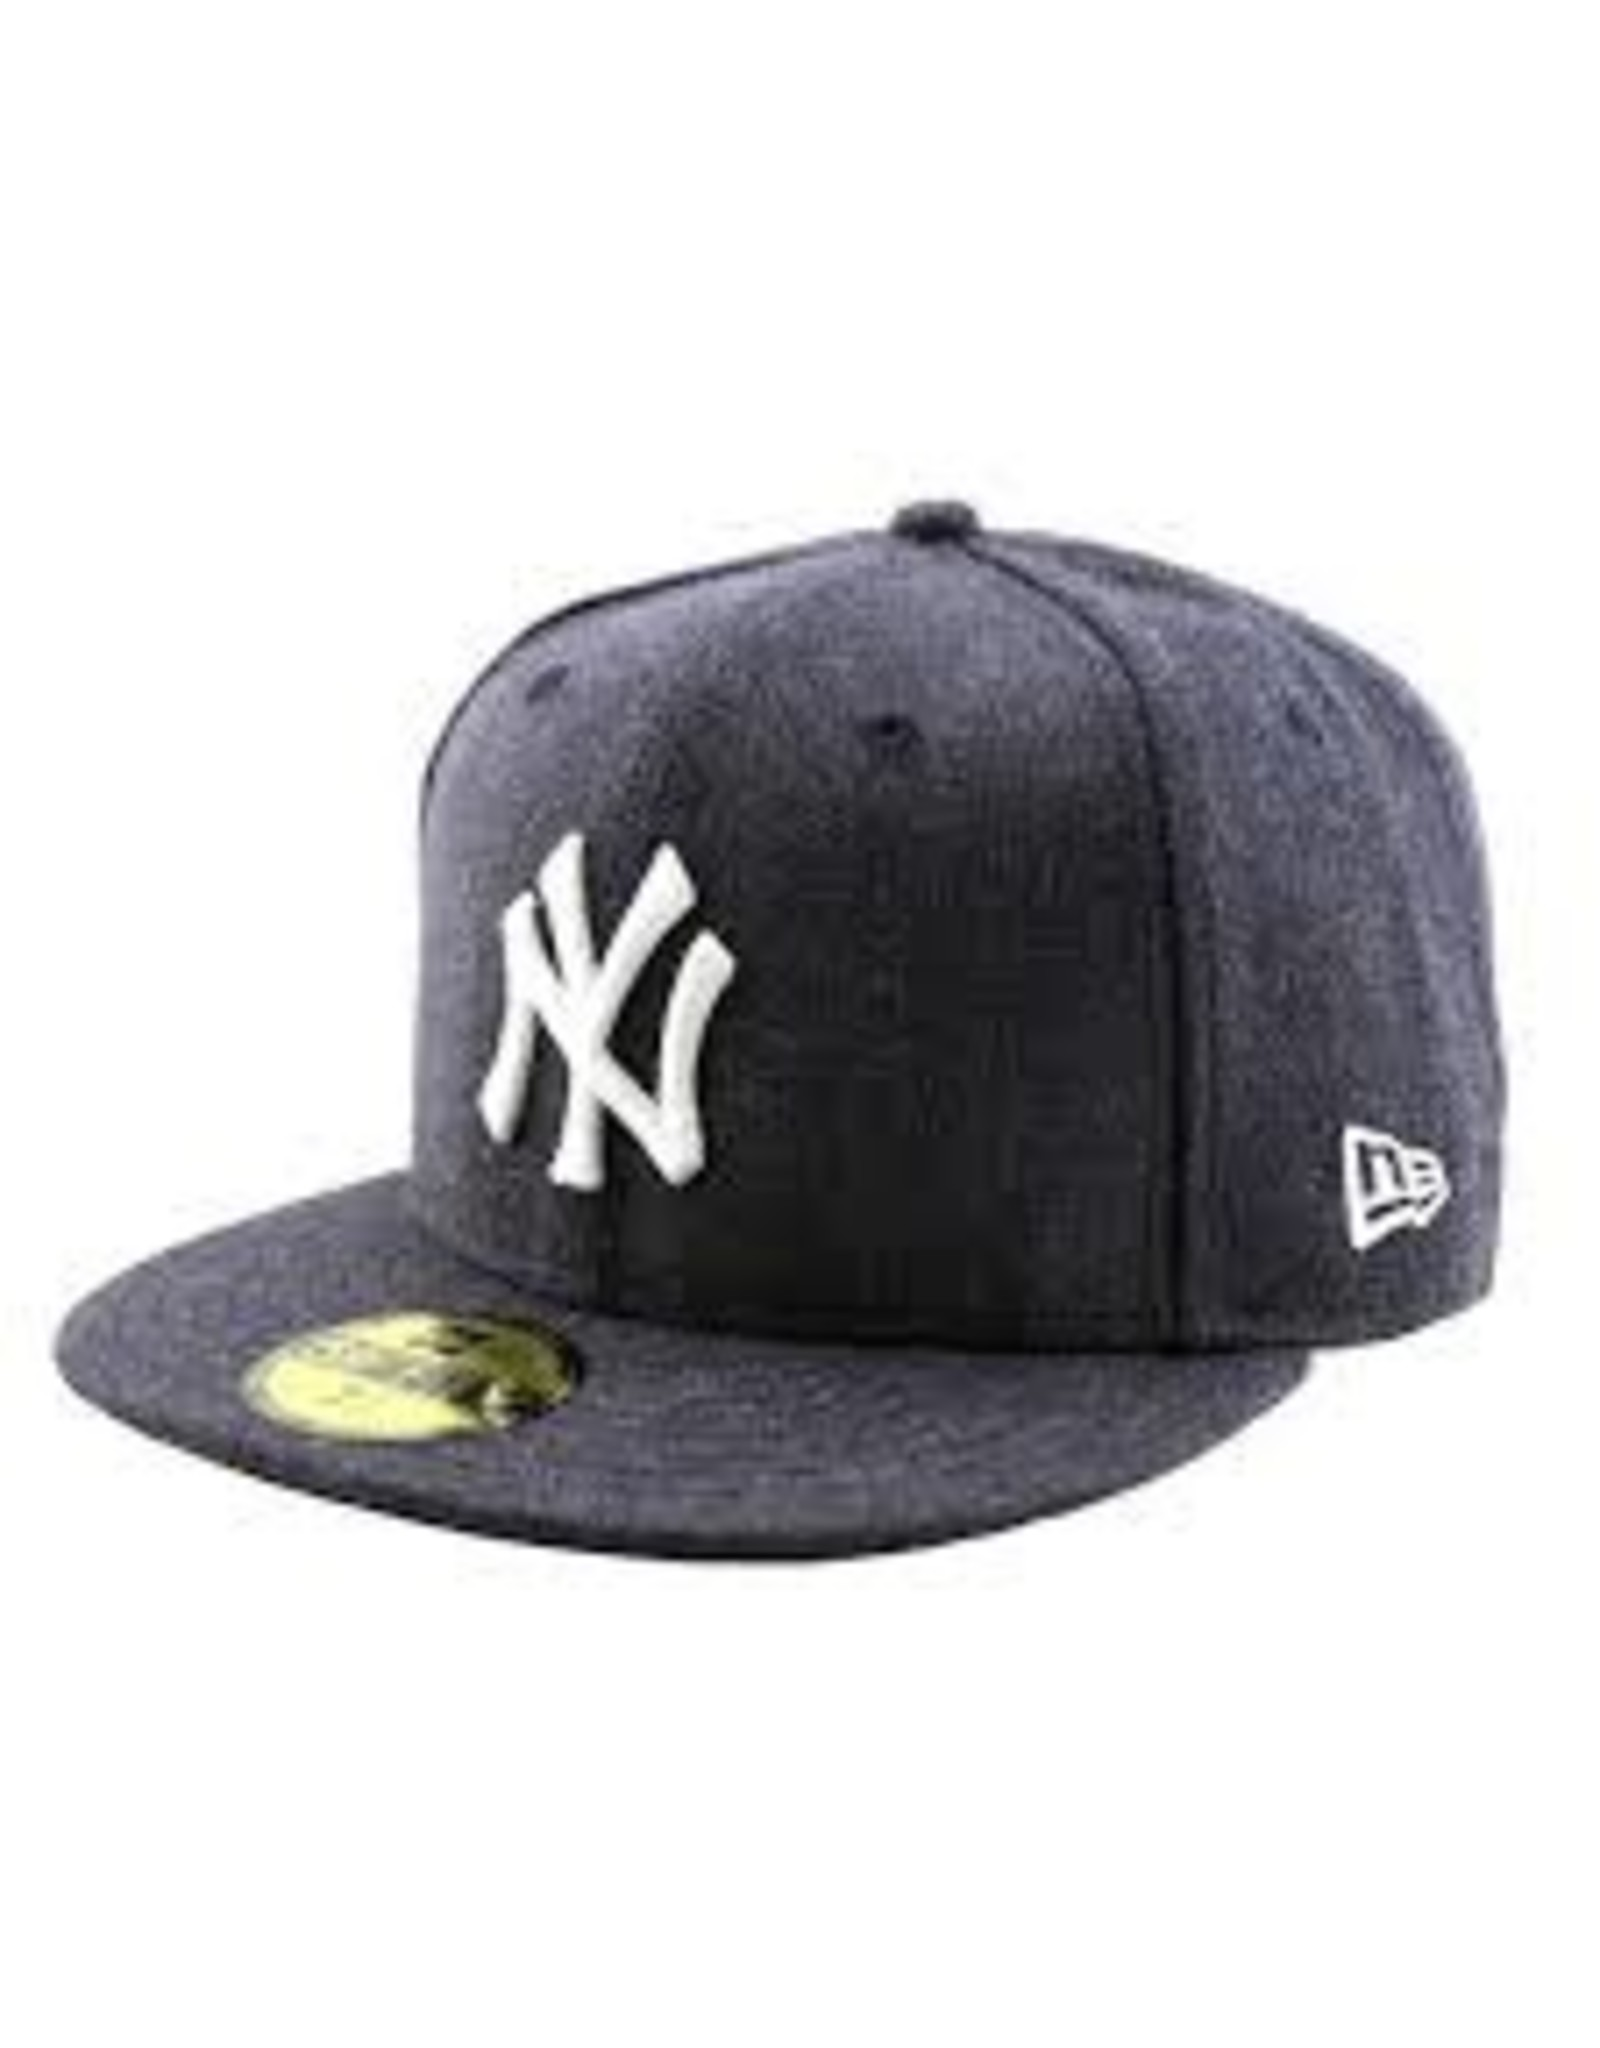 New Era New Era - Yankees Heather Crisp 3 9FIFTY - Snapback